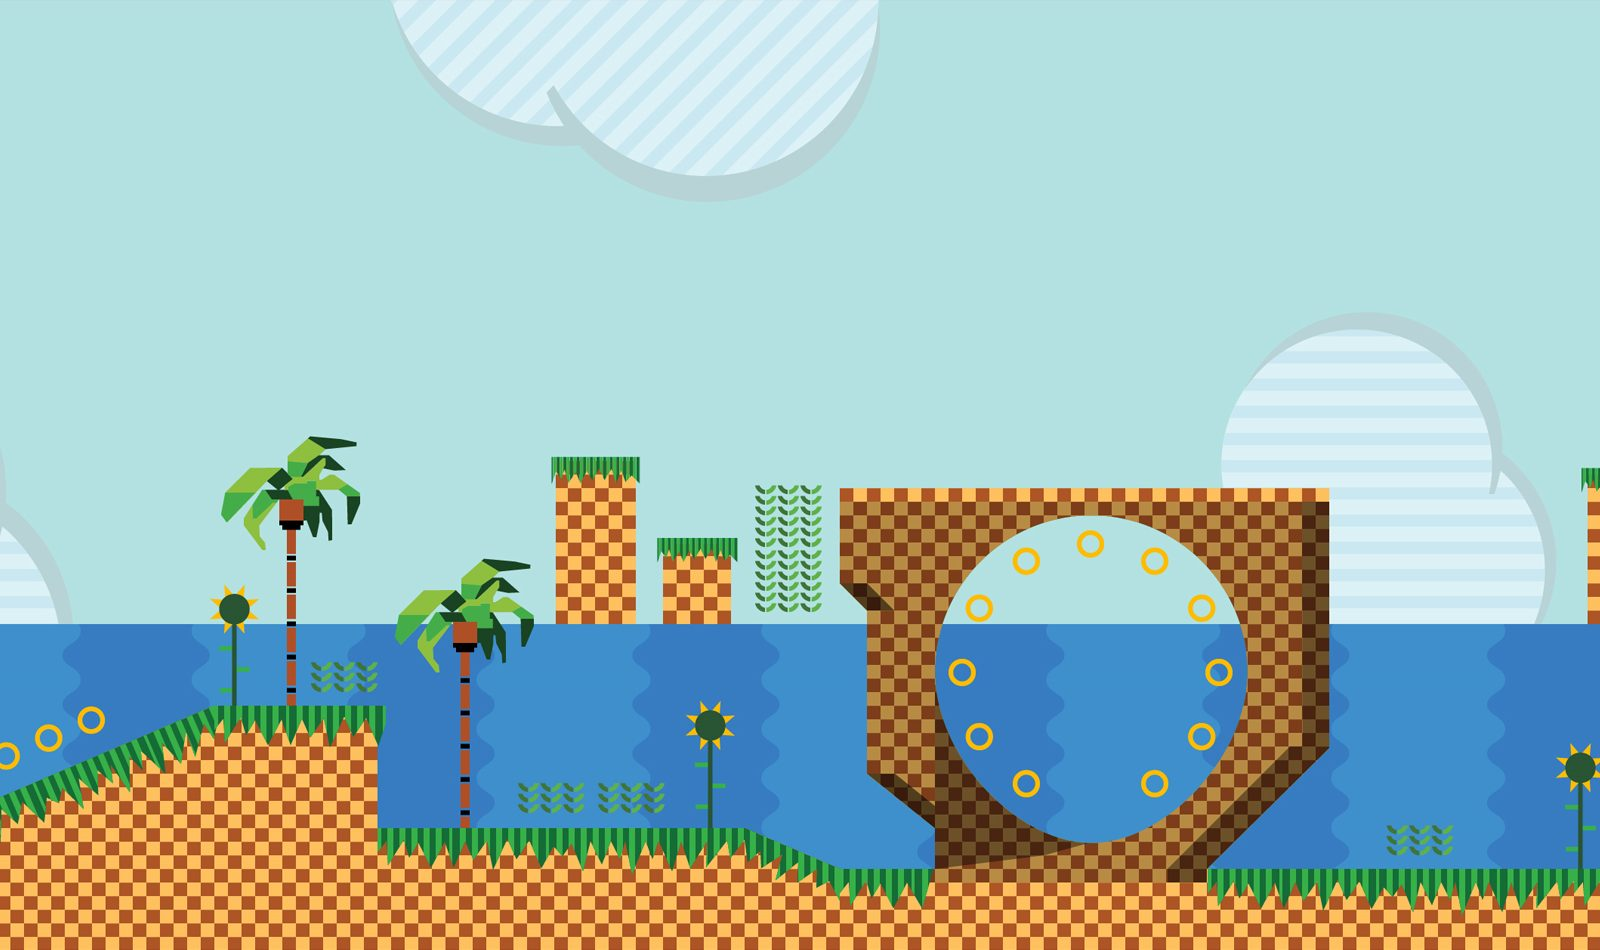 The Play! image is a screenshot of an early 1990s game in bright blocky colours including palm trees and a loop the loop